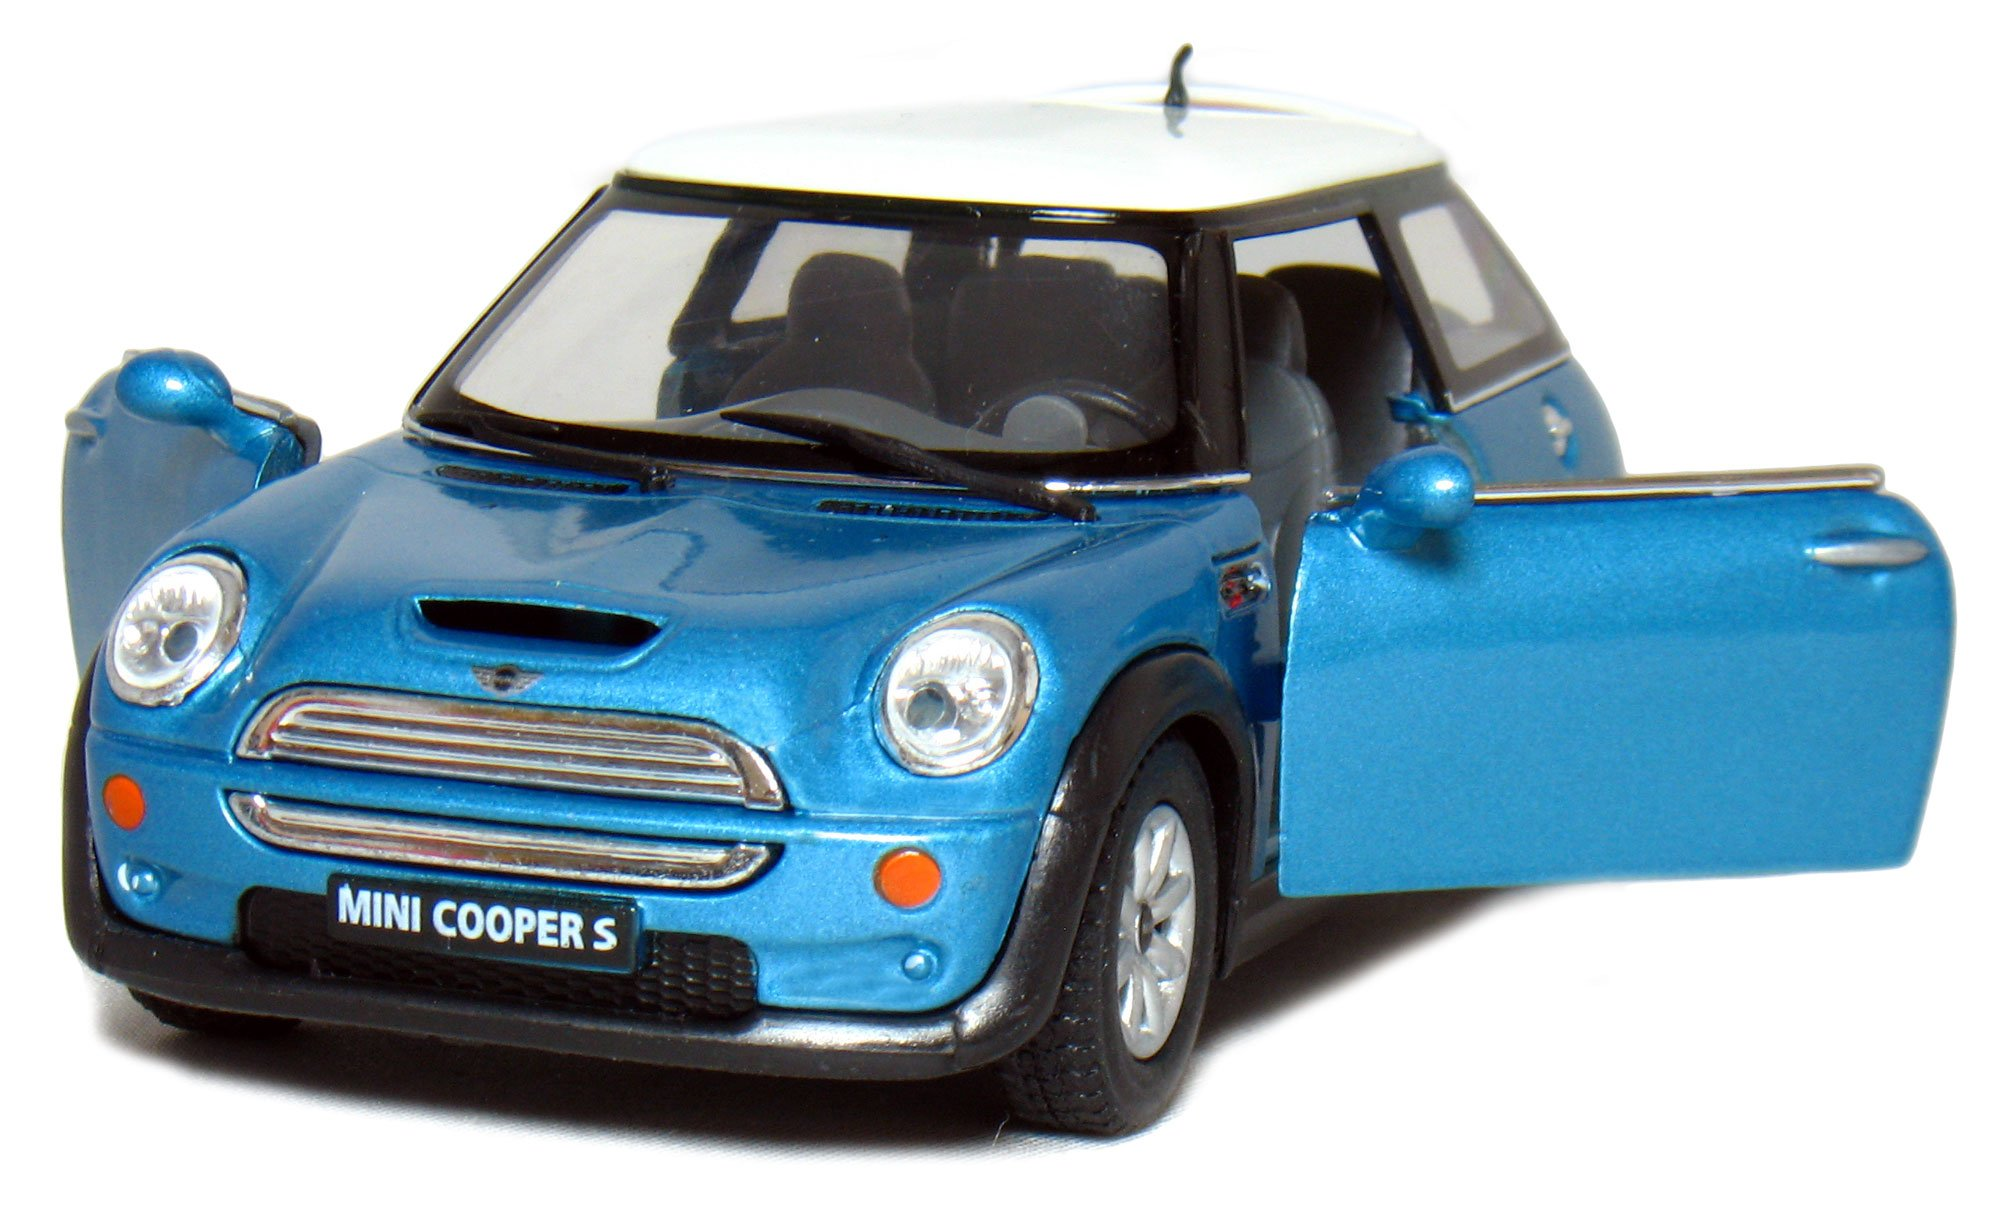 mini cooper model. Black Bedroom Furniture Sets. Home Design Ideas